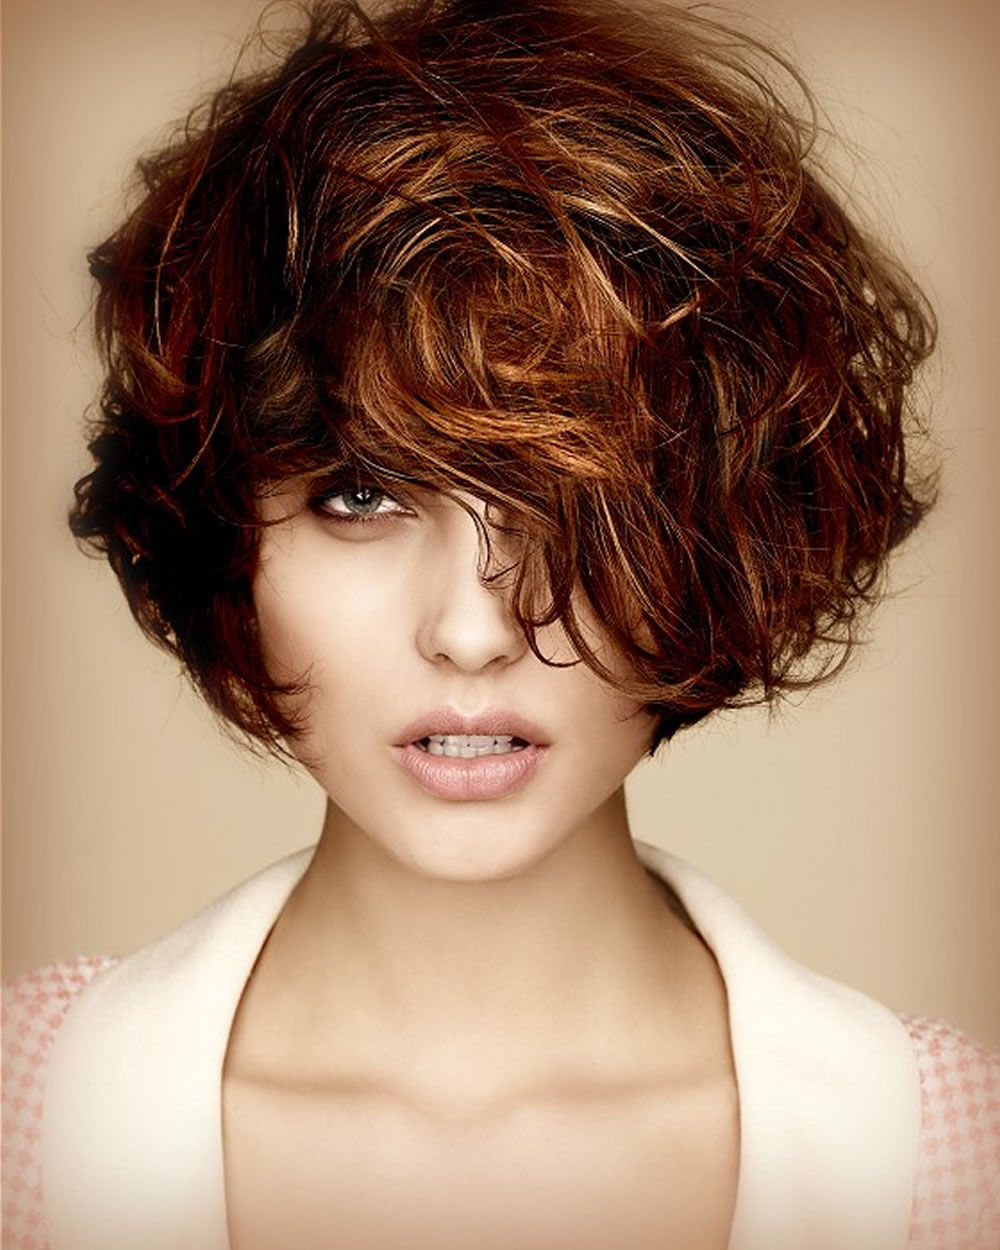 Short Bob Hairstyles & Haircuts For Women 2018 2019 Messy Short With Messy Short Haircuts For Women (View 22 of 25)